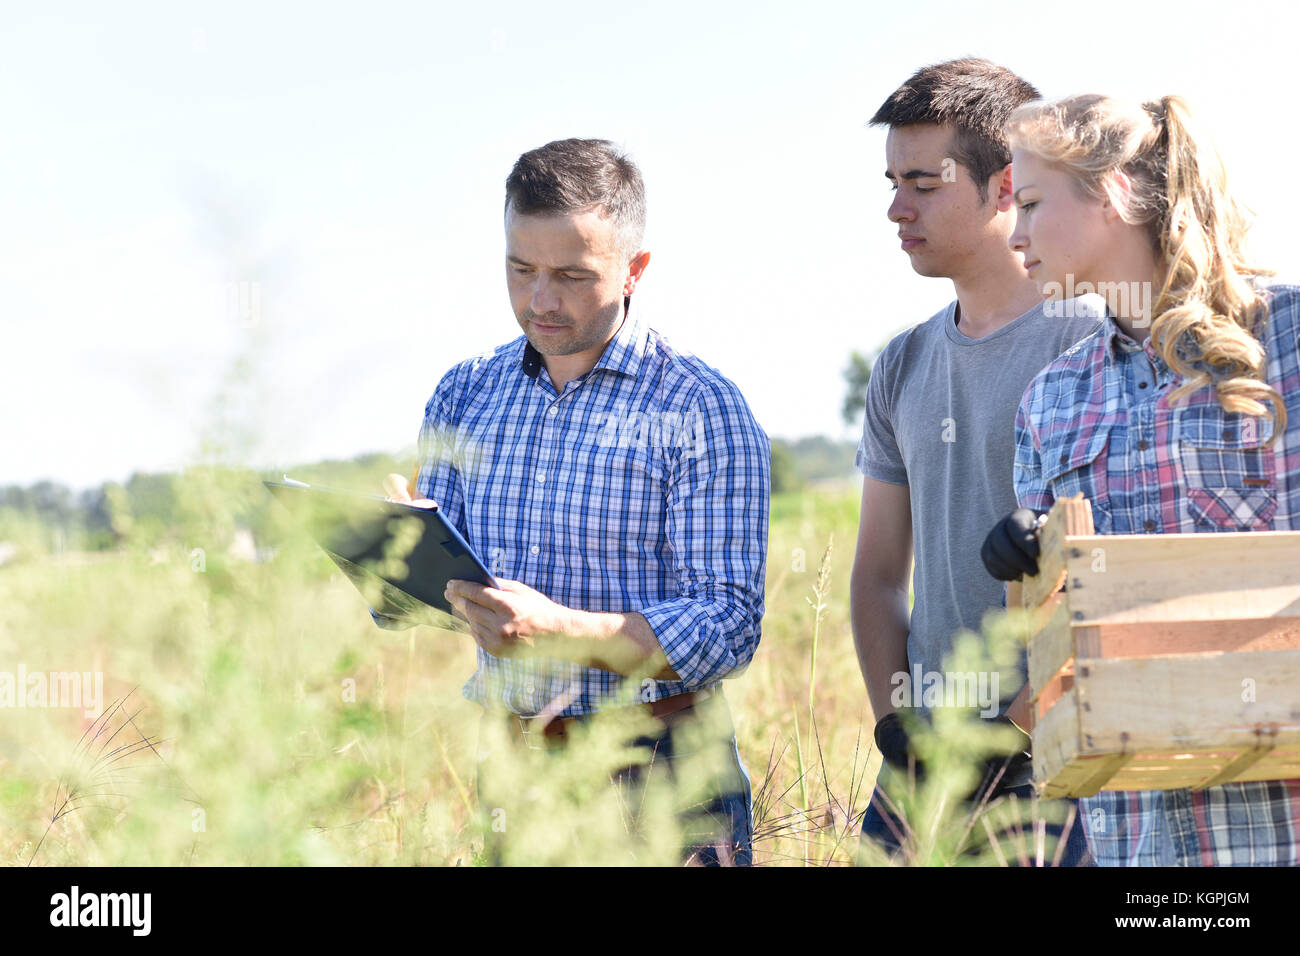 Young people with instructor in agricultural field - Stock Image